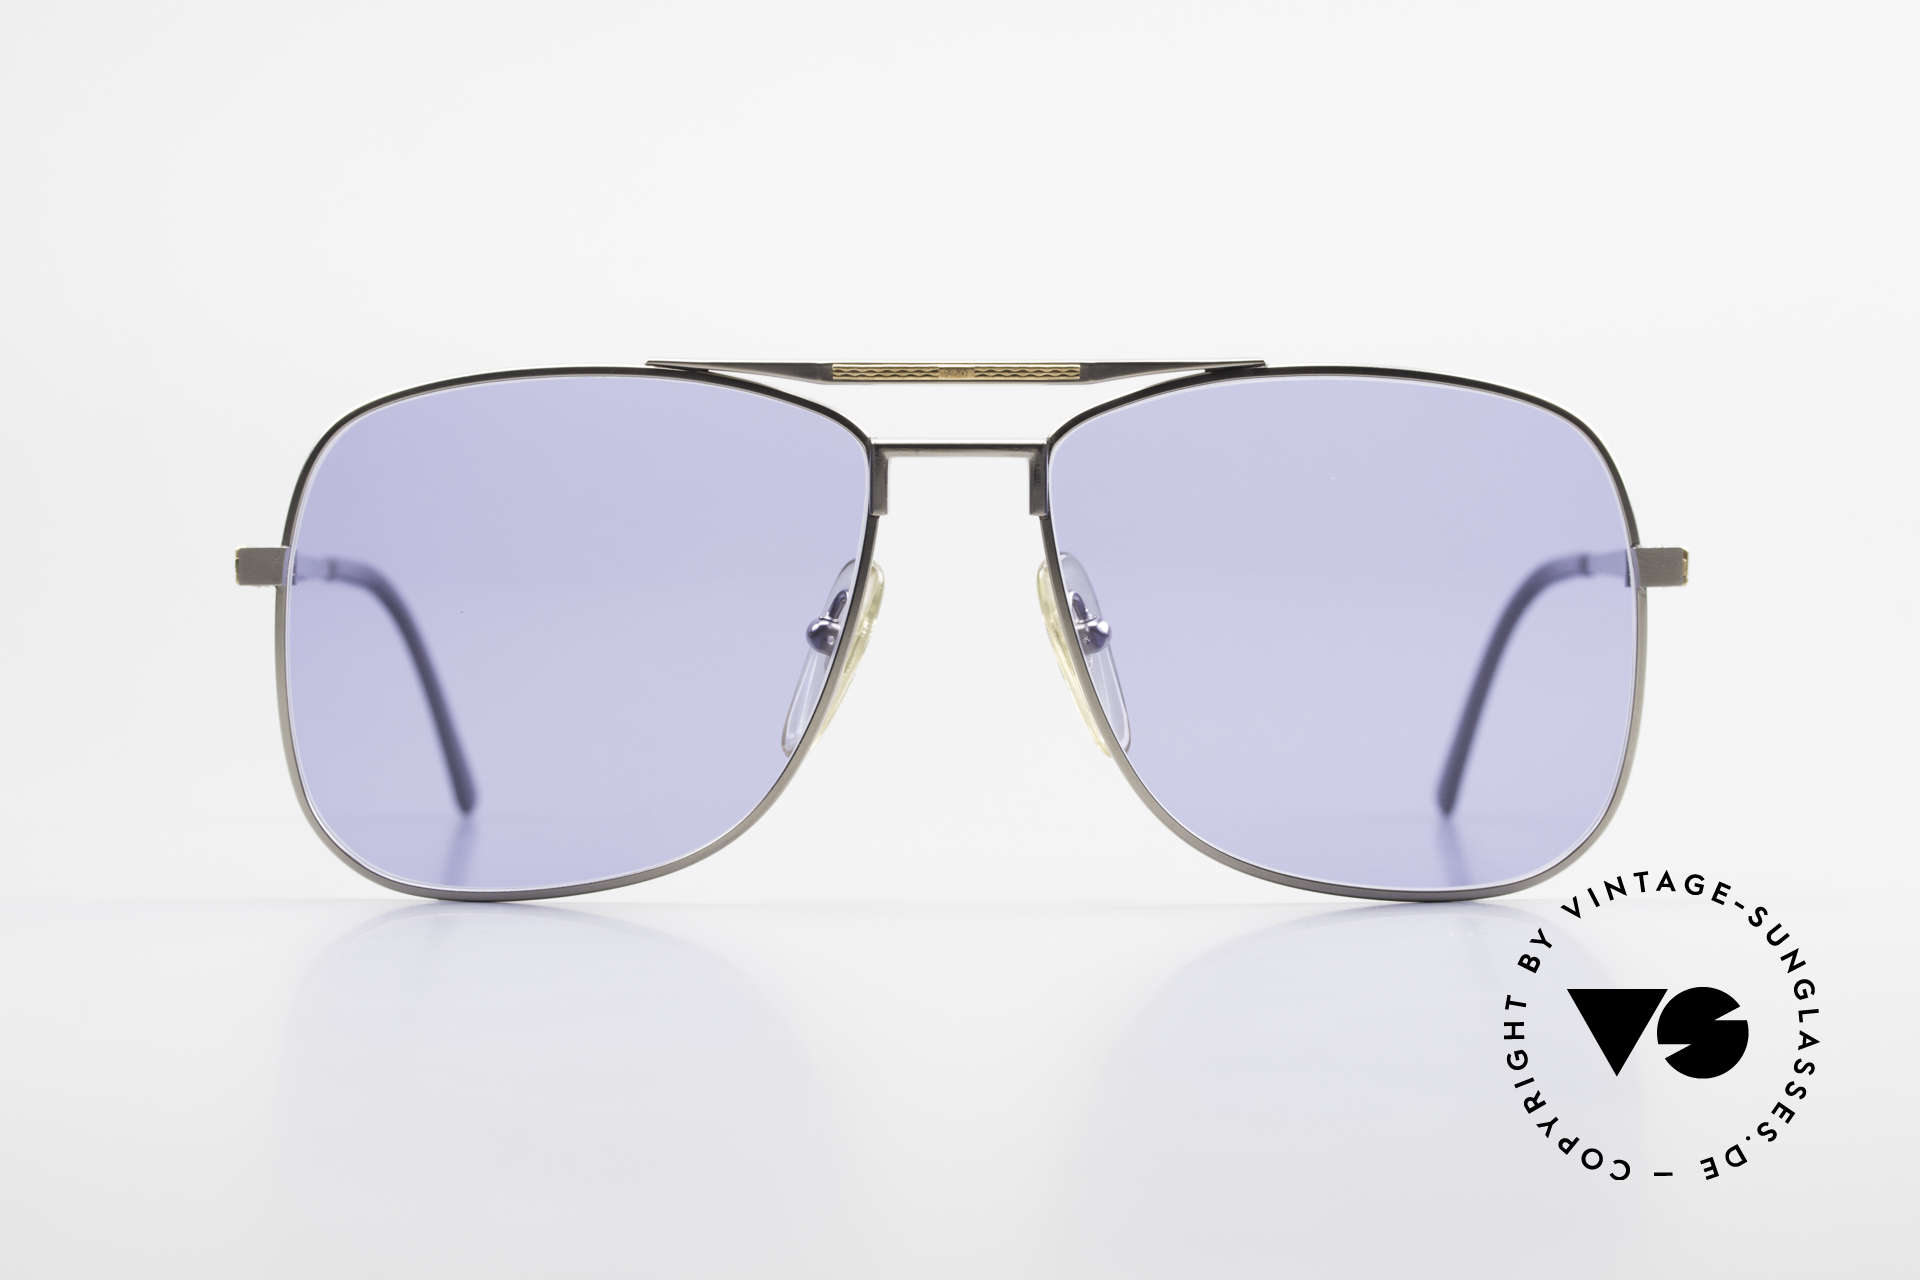 Dunhill 6038 18kt Gold Titanium 80s Shades, this Dunhill model is at the top of the eyewear sector, Made for Men